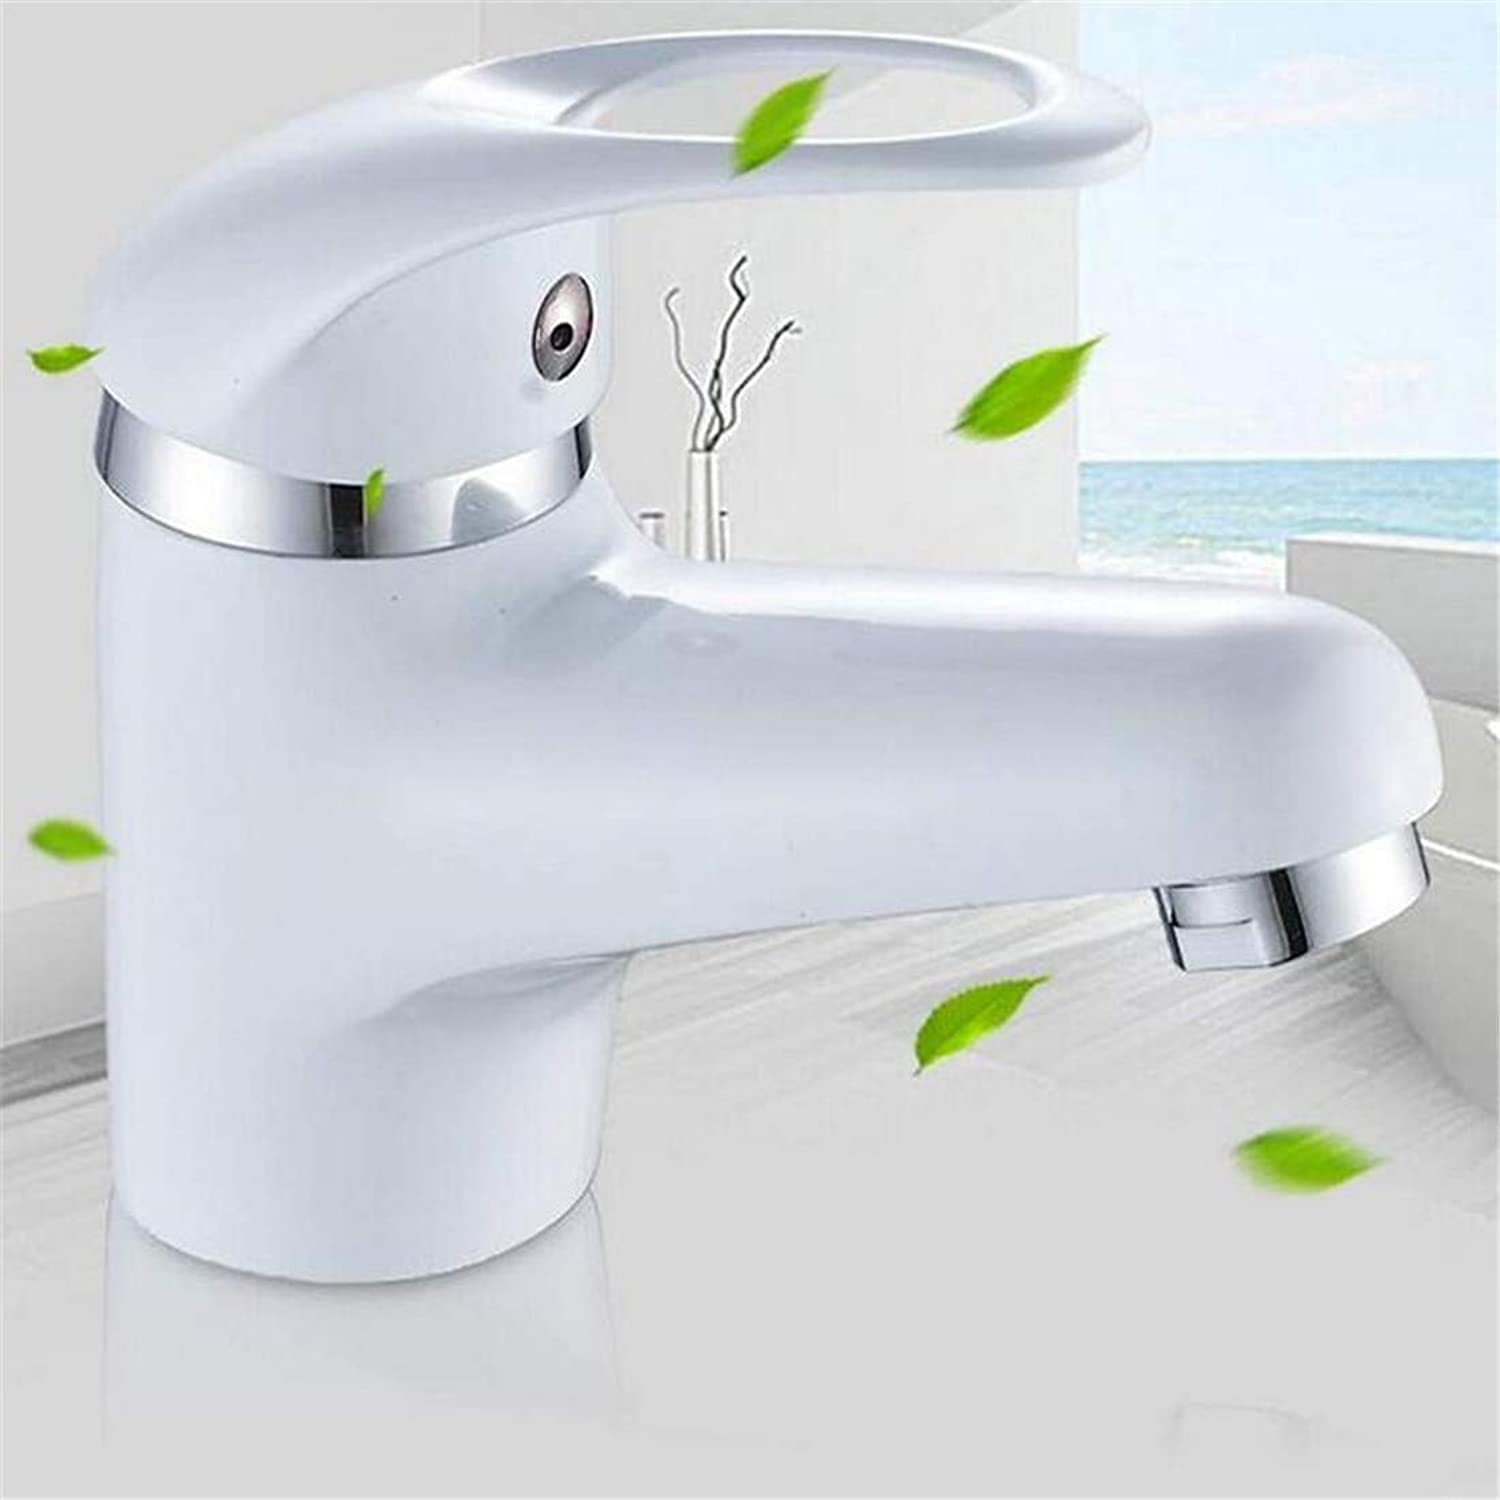 Faucet Vintage Plated Deck Mounted Faucet Faucet Washbasin Mixer Bathroom Faucet Single Handle Waterfall Faucet Brass Vessel Sink Water Tap